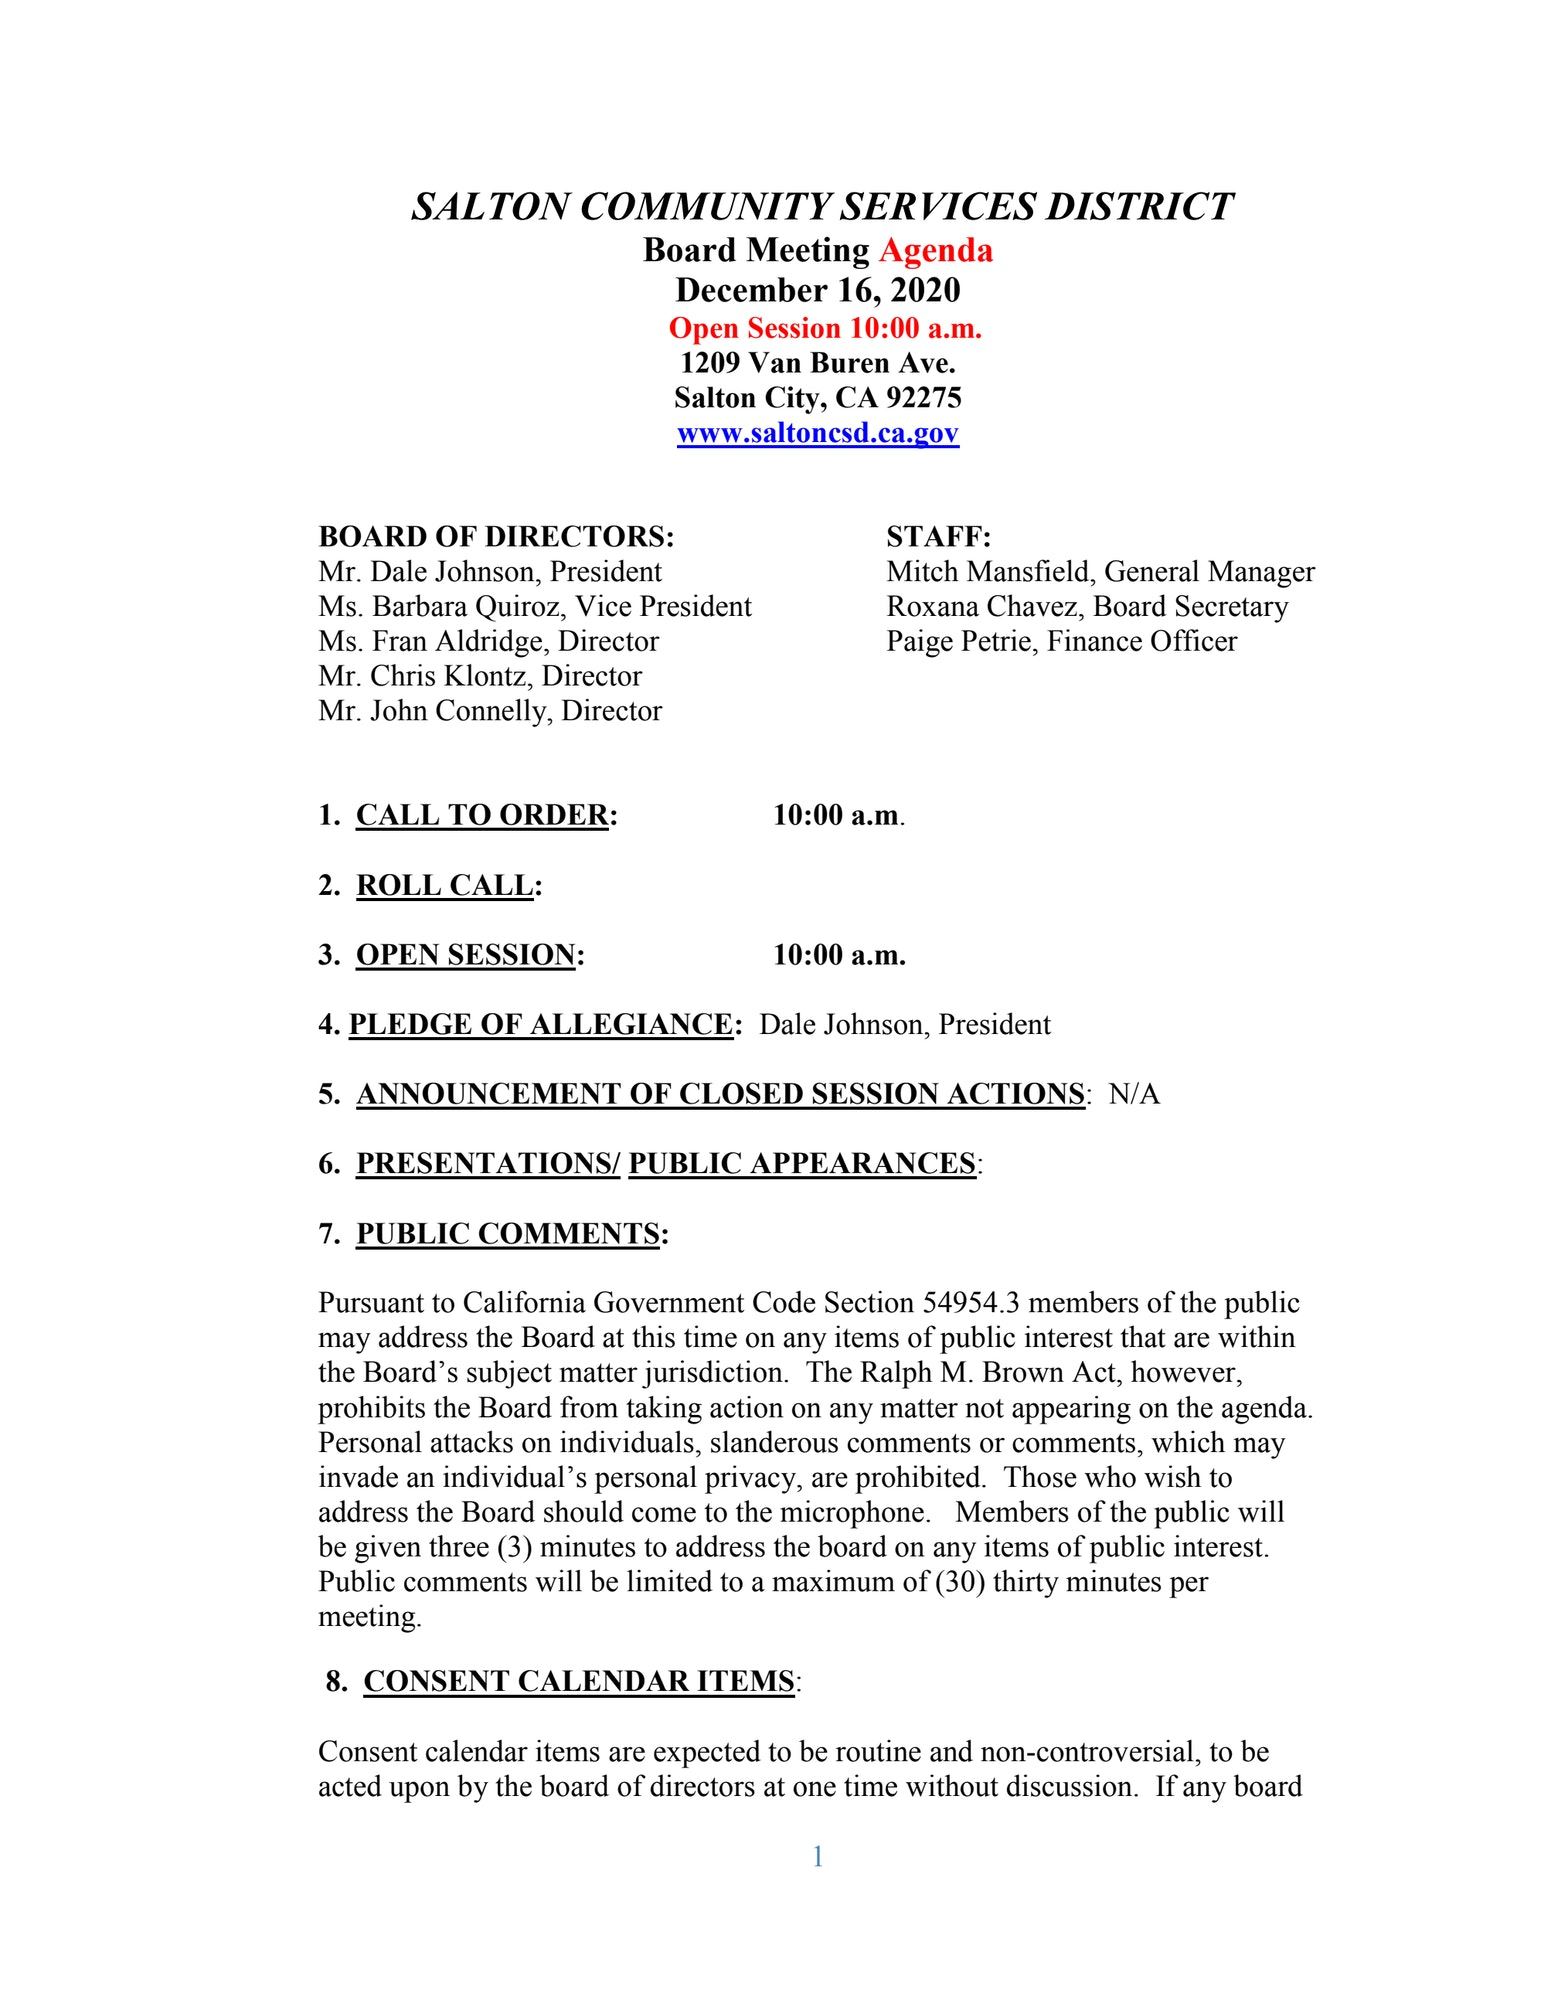 Subject: Salton Community Services District Monthly Board Meeting for December 2020 Date and Time: 12/16/2020 9:00 AM US/Pacific GMT-0800 Description: Salton Community Services District Monthly Board Meeting for December 16, 2020 via teleconference.  There is an option for online, but to keep it simple, please use the phone method noted.  Dial-in number (US): (515) 604-9564 Access code: 298286#  For additional assistance connecting to the meeting text 'Call Me' to the Dial-In number above and you will be called into the conference. Message and data rates may apply.